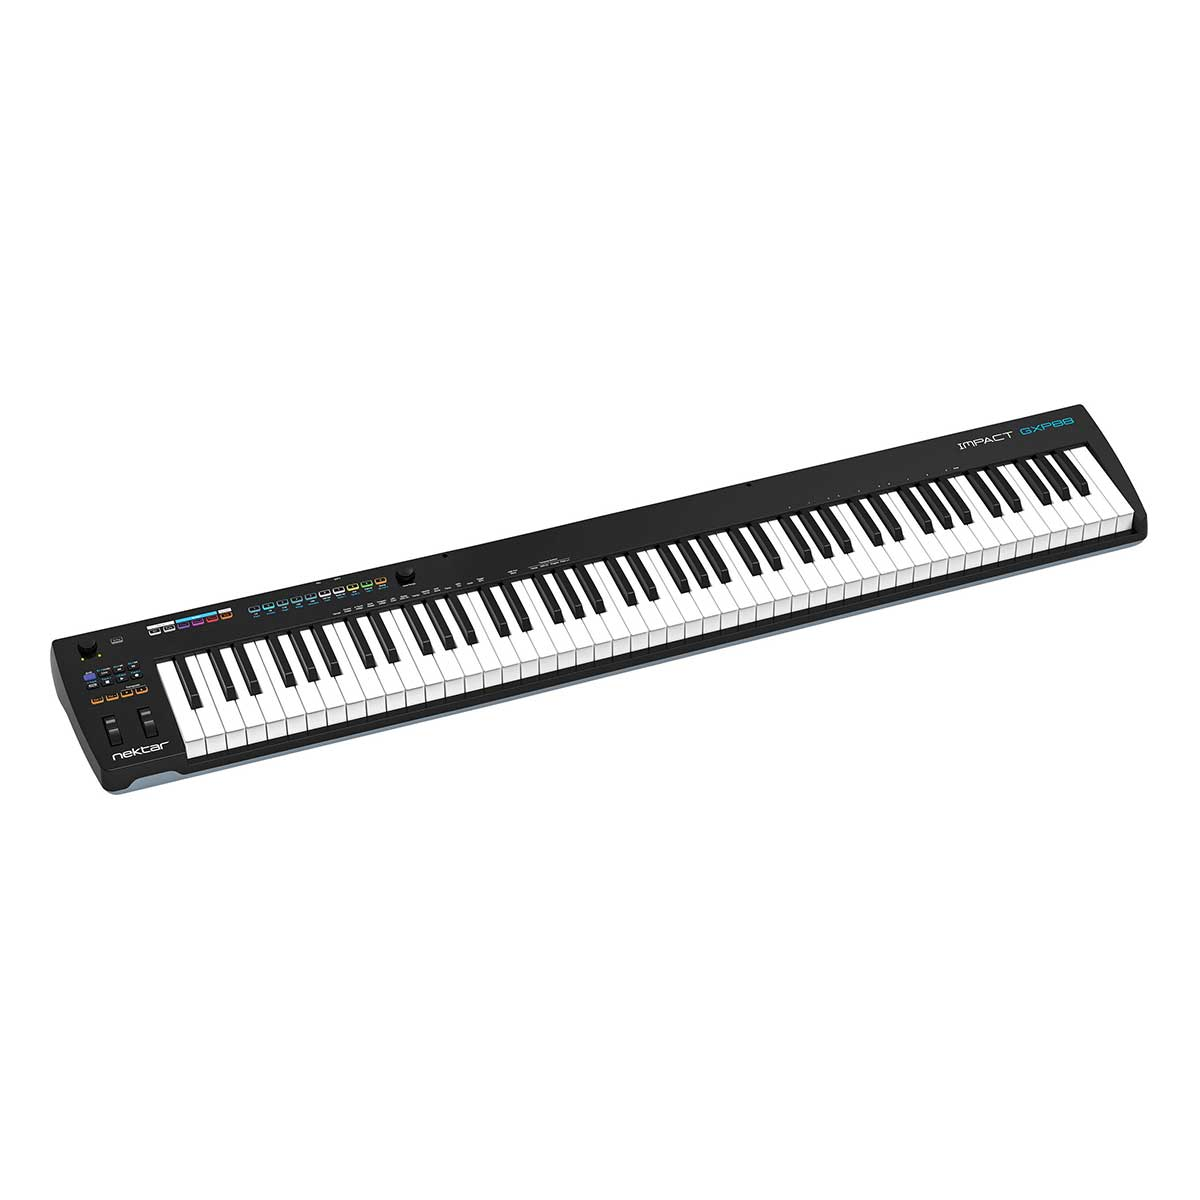 Nektar Impact GXP88 88 key semi-weighted USB Midi Controller Keyboard